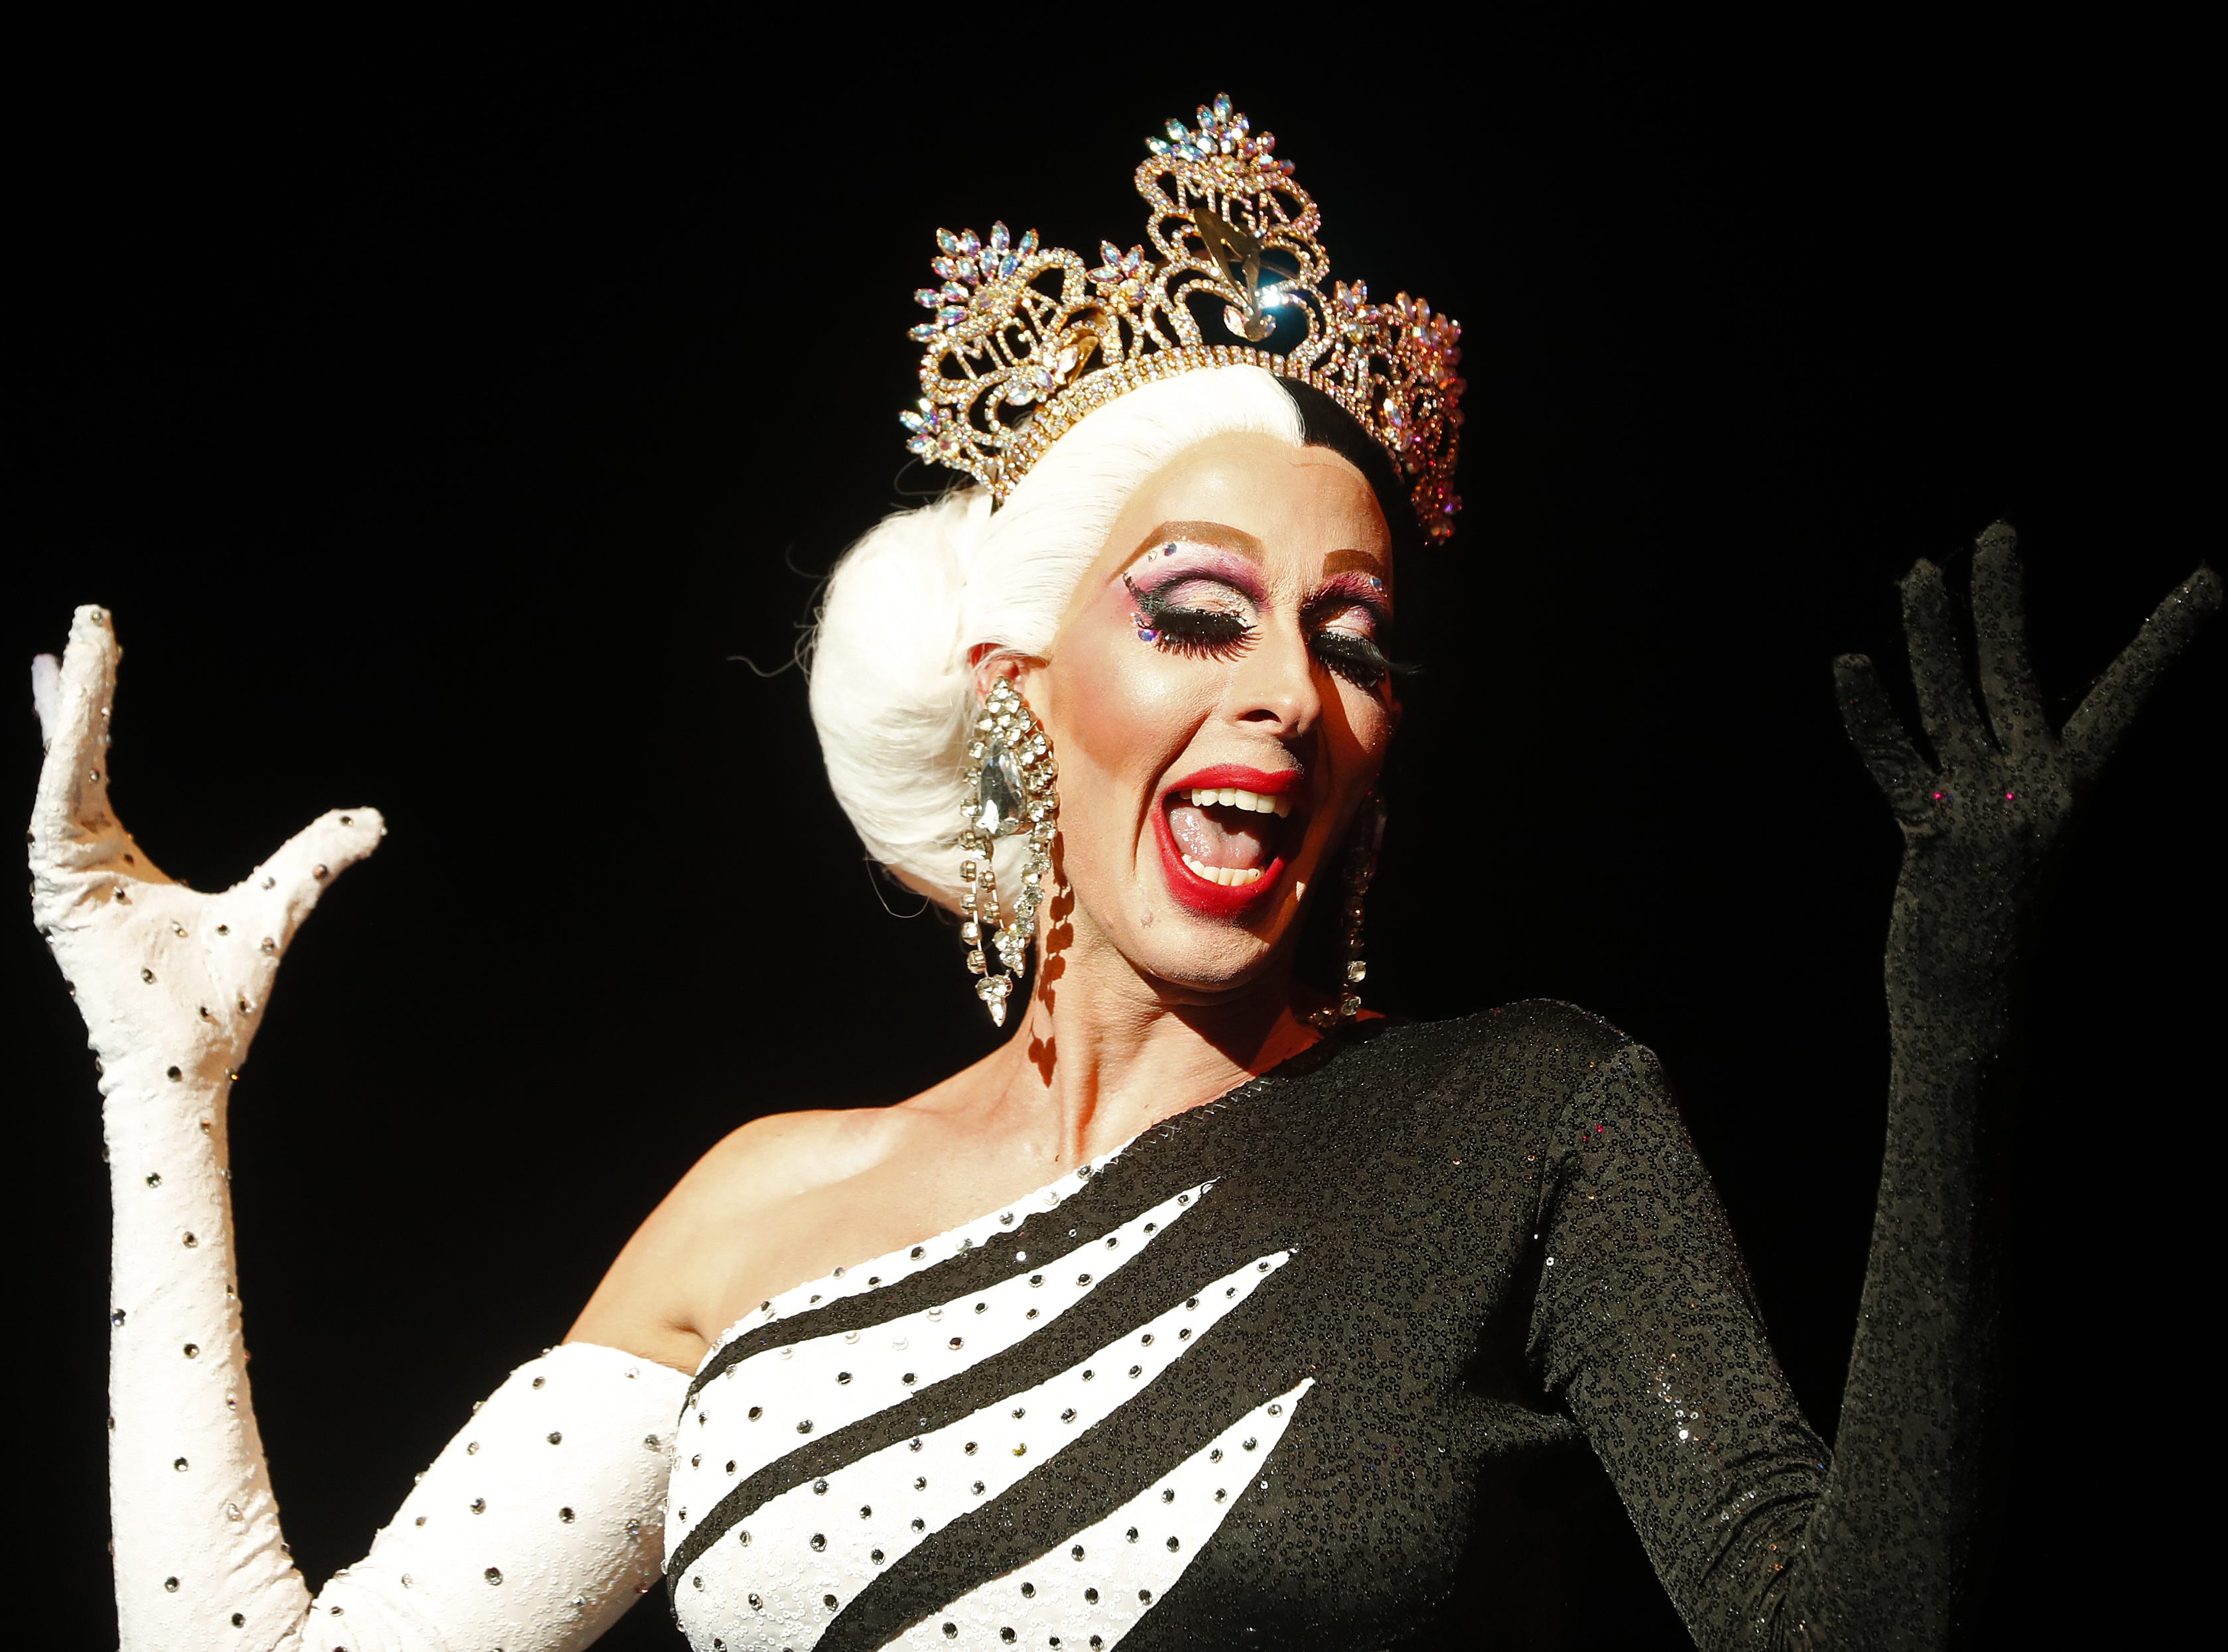 Miss Gay America 2019 Andora Te'Tee performs during the Miss Gay Arizona America pageant 2019 at Tempe Center for the Arts on May 11, 2019.